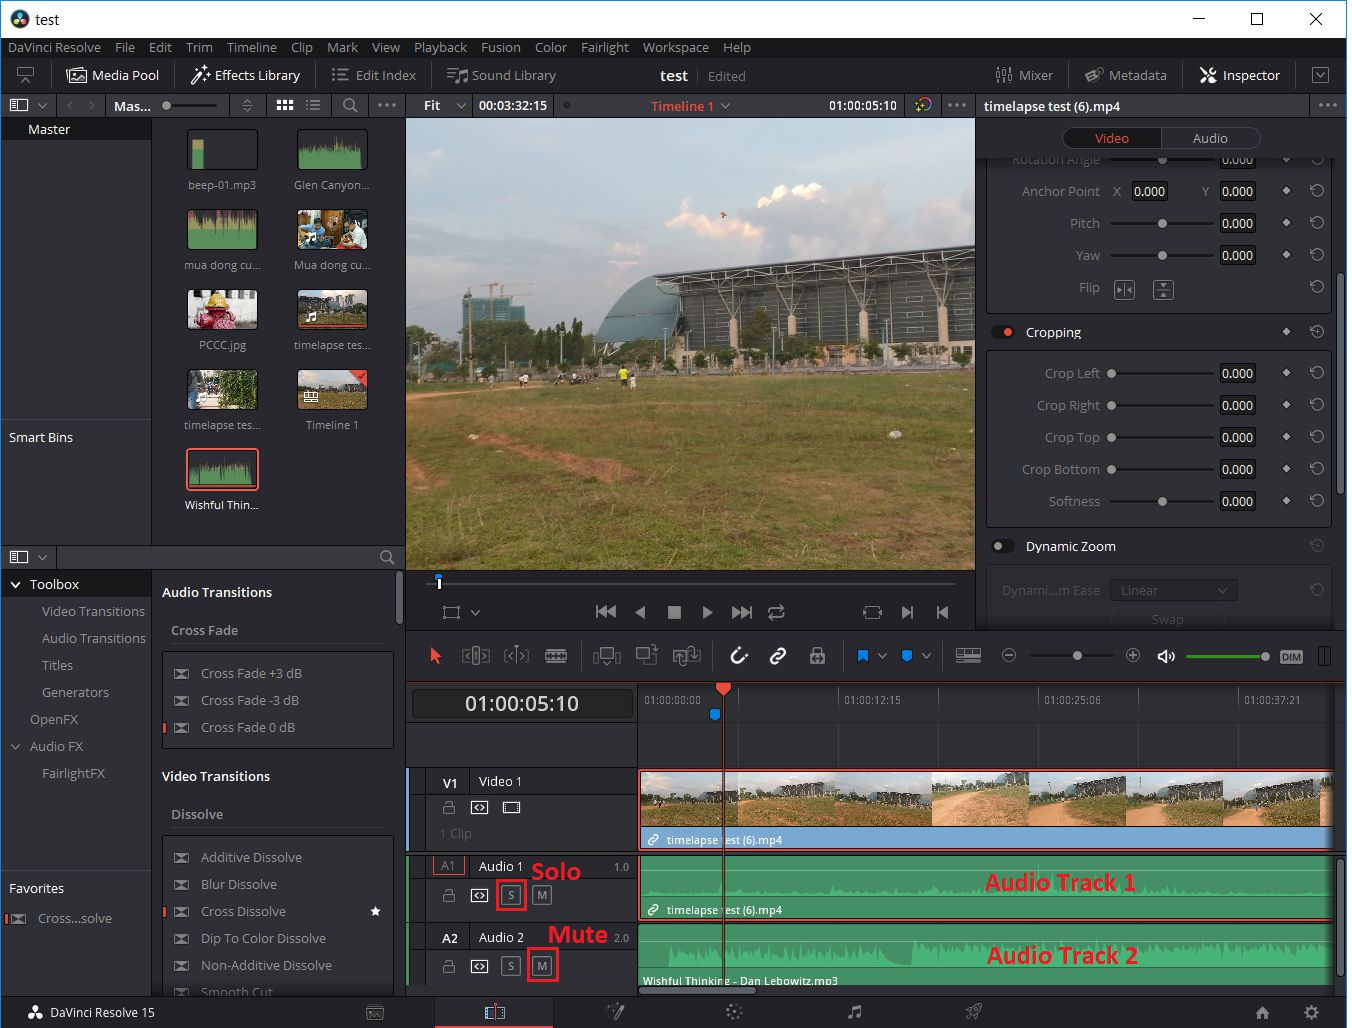 Davinci Resolve - Audio Track